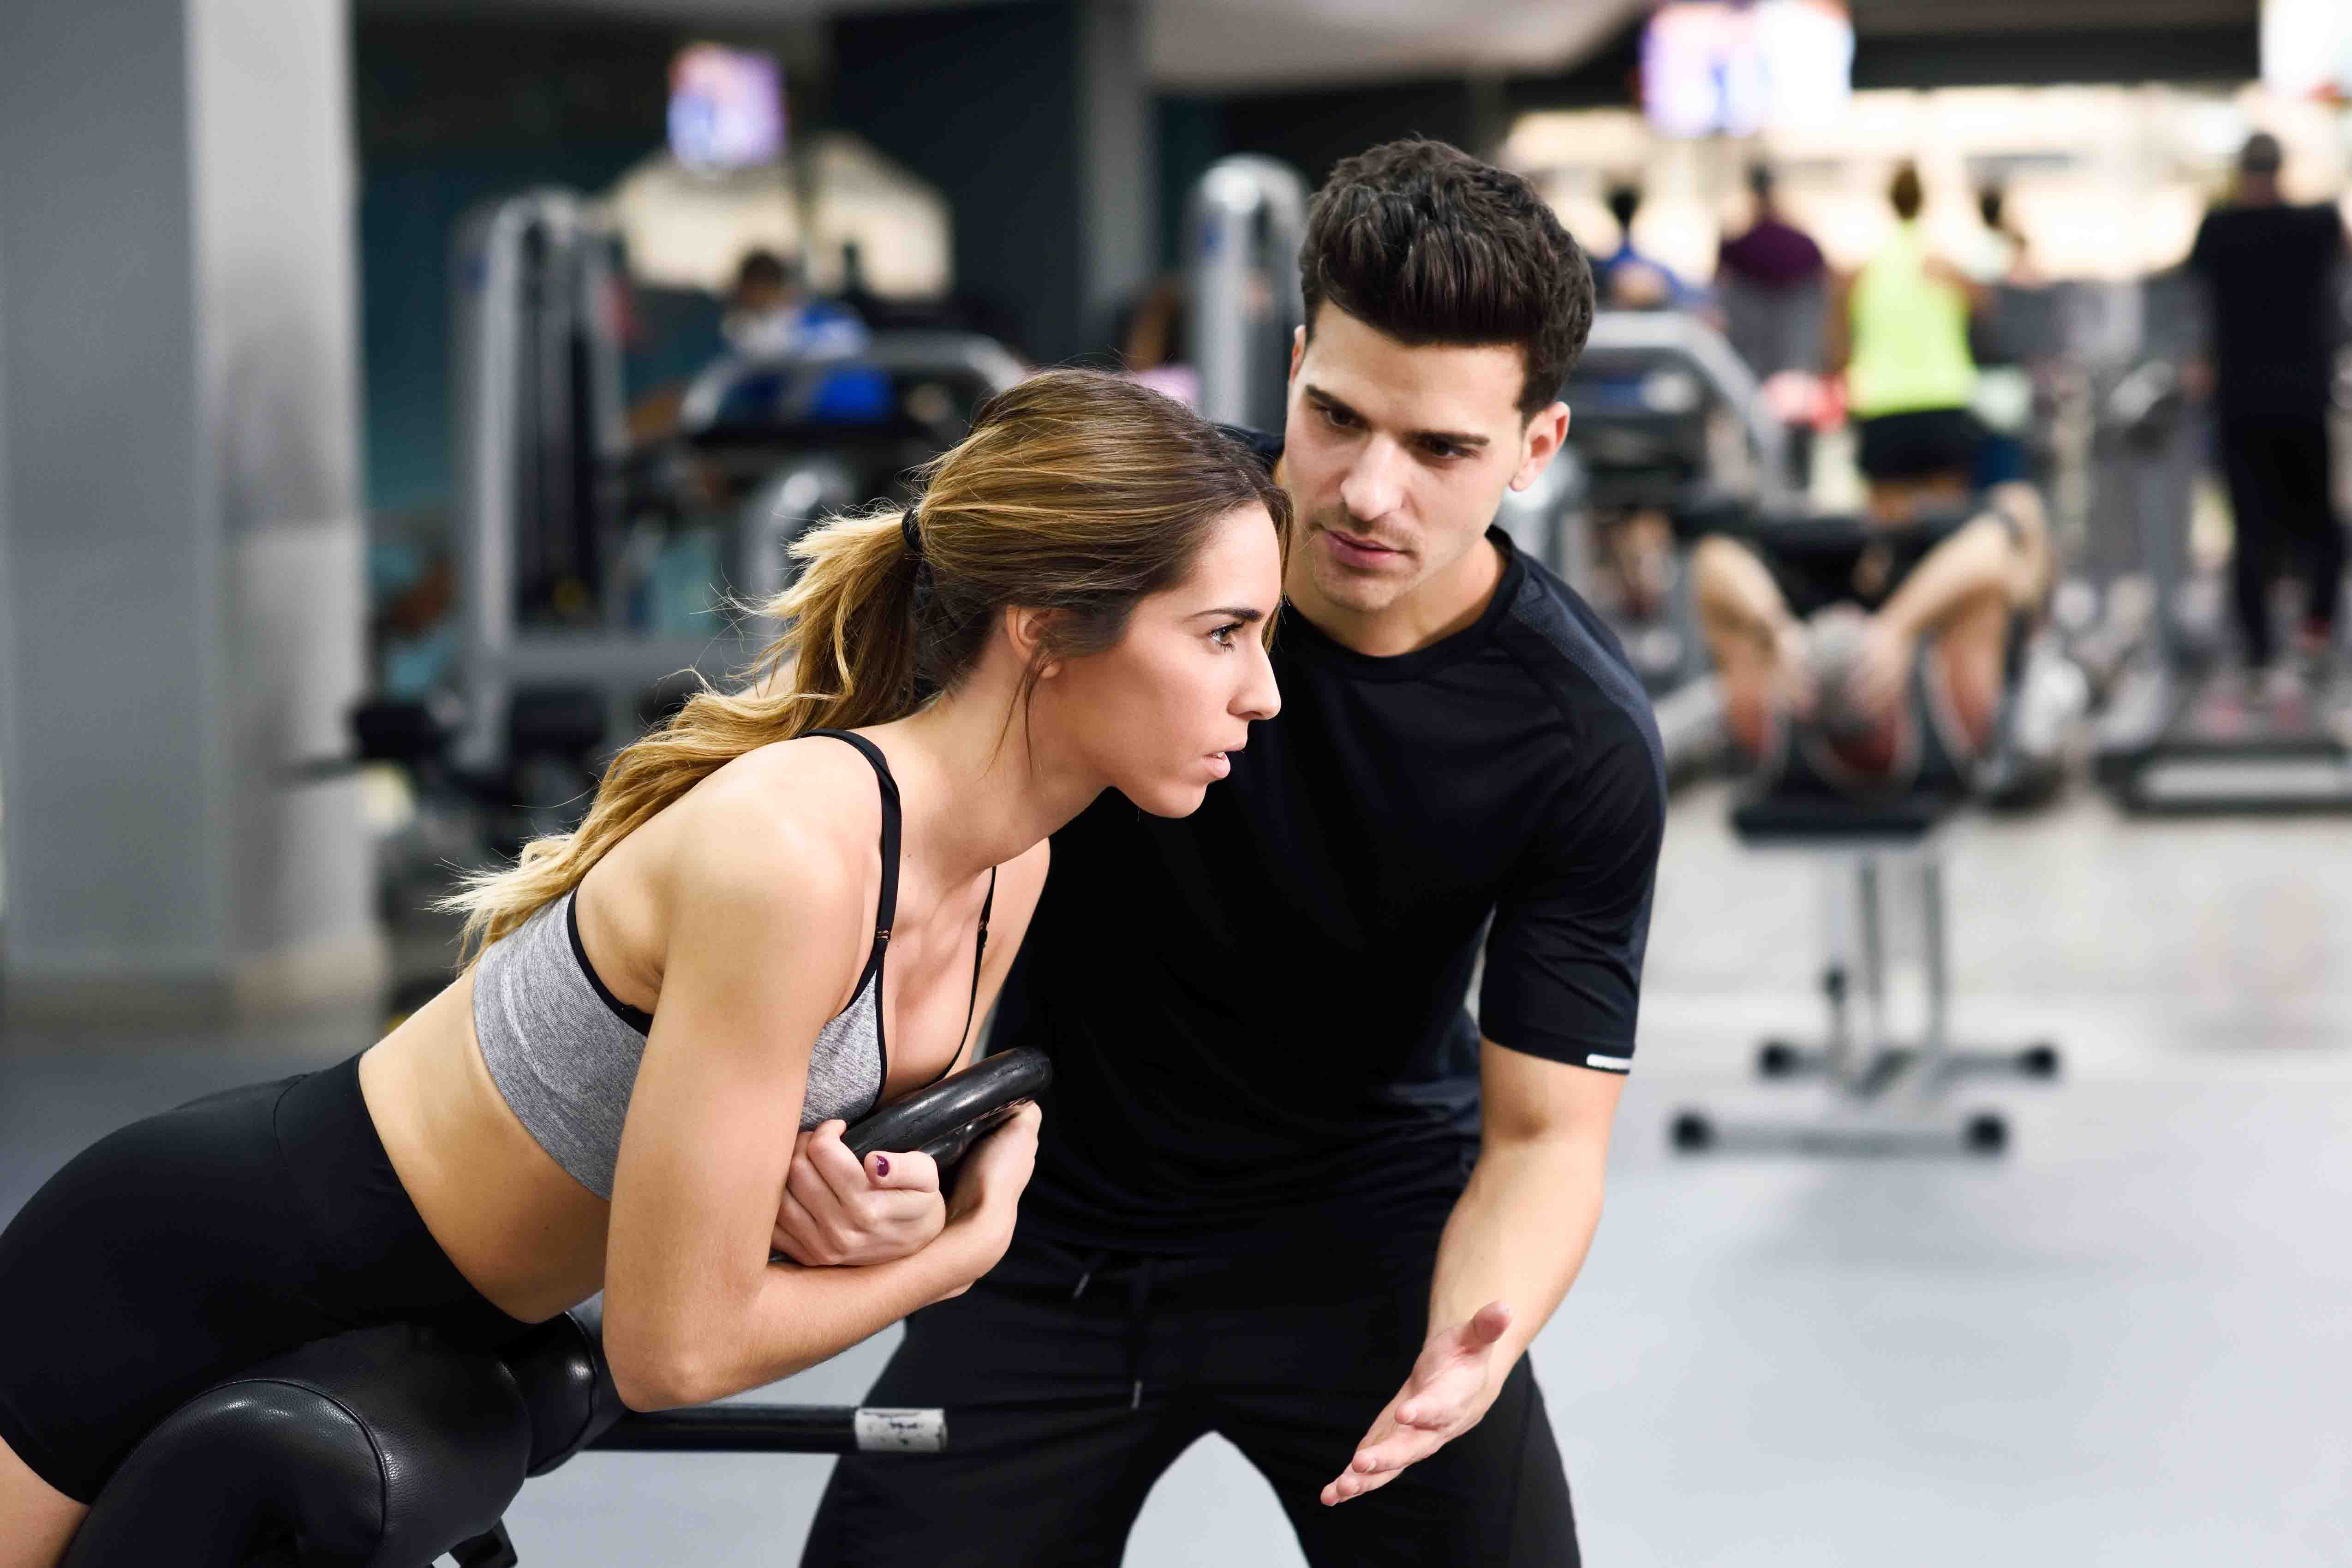 Key skills which make it easier to become a certified personal trainer